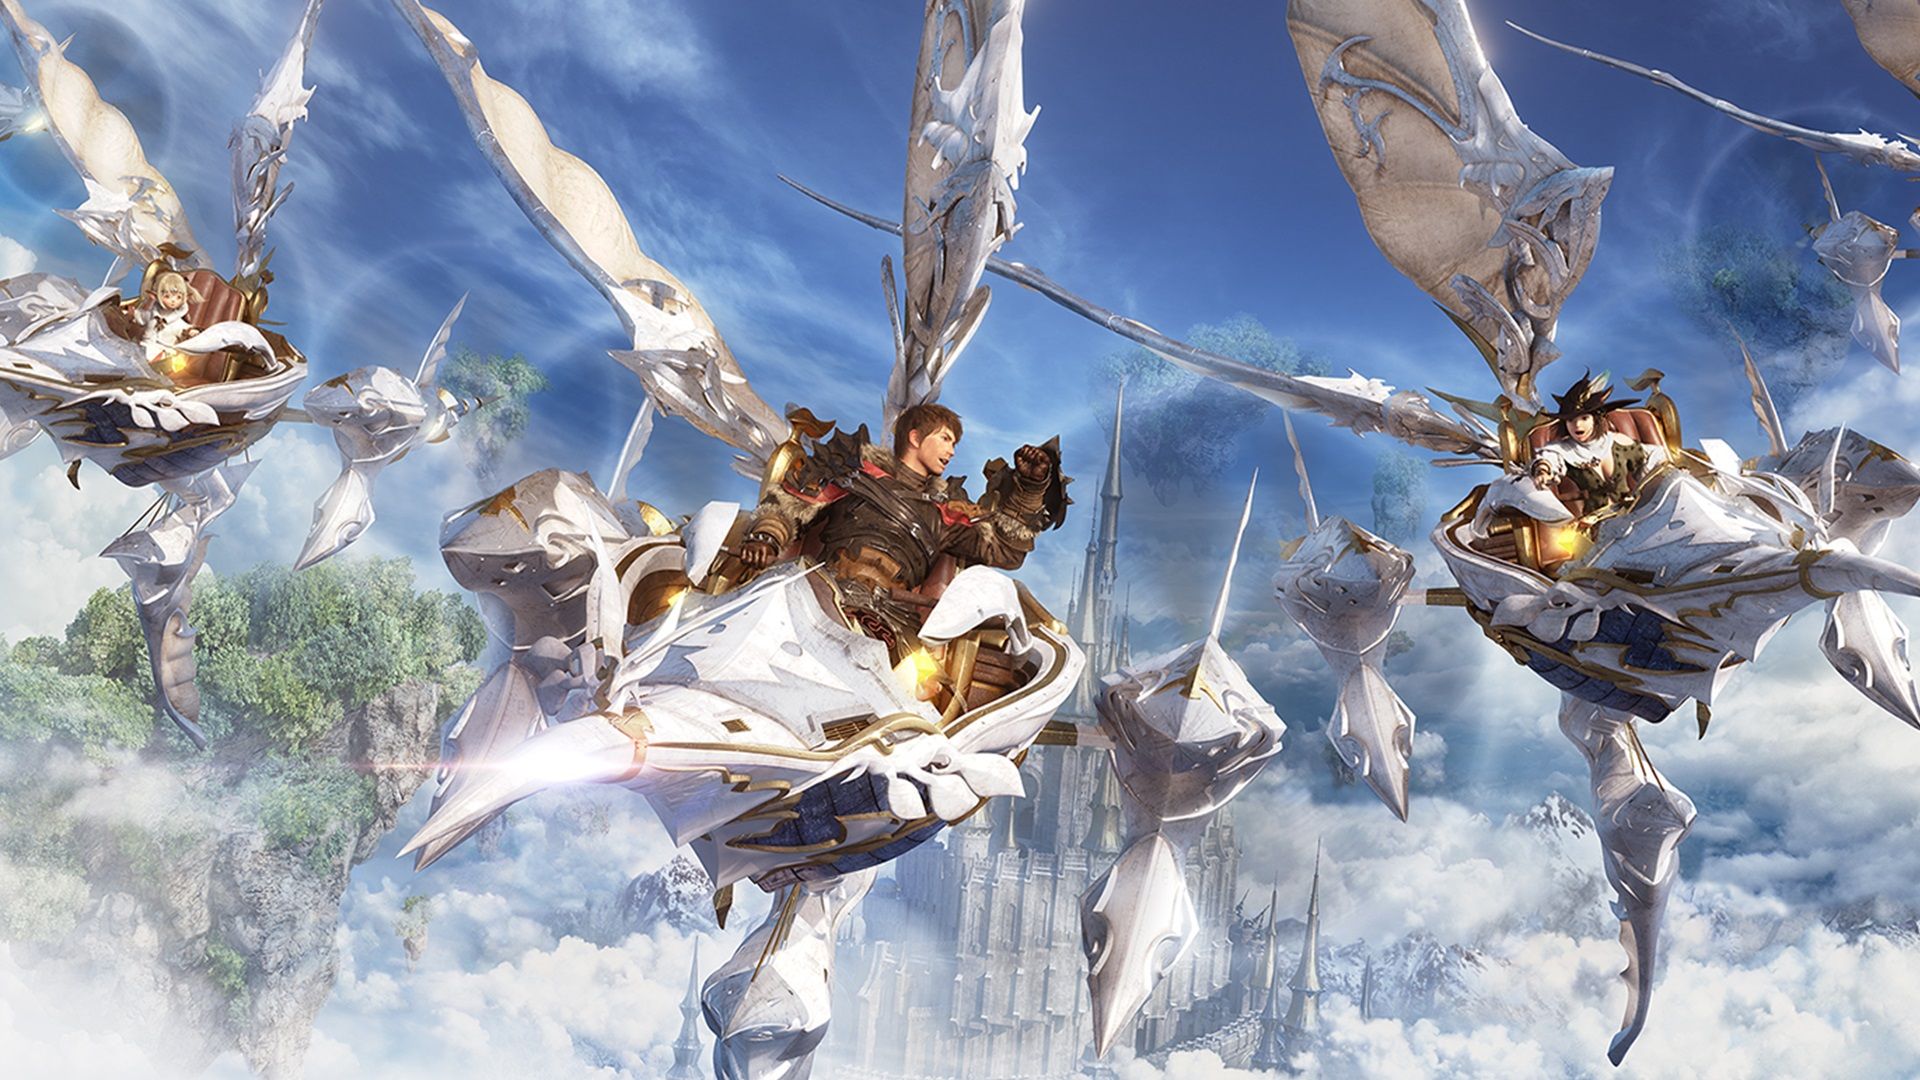 Photo of Final Fantasy XIV's Free Trial Looks Mighty Tempting, But I Will Not Give In